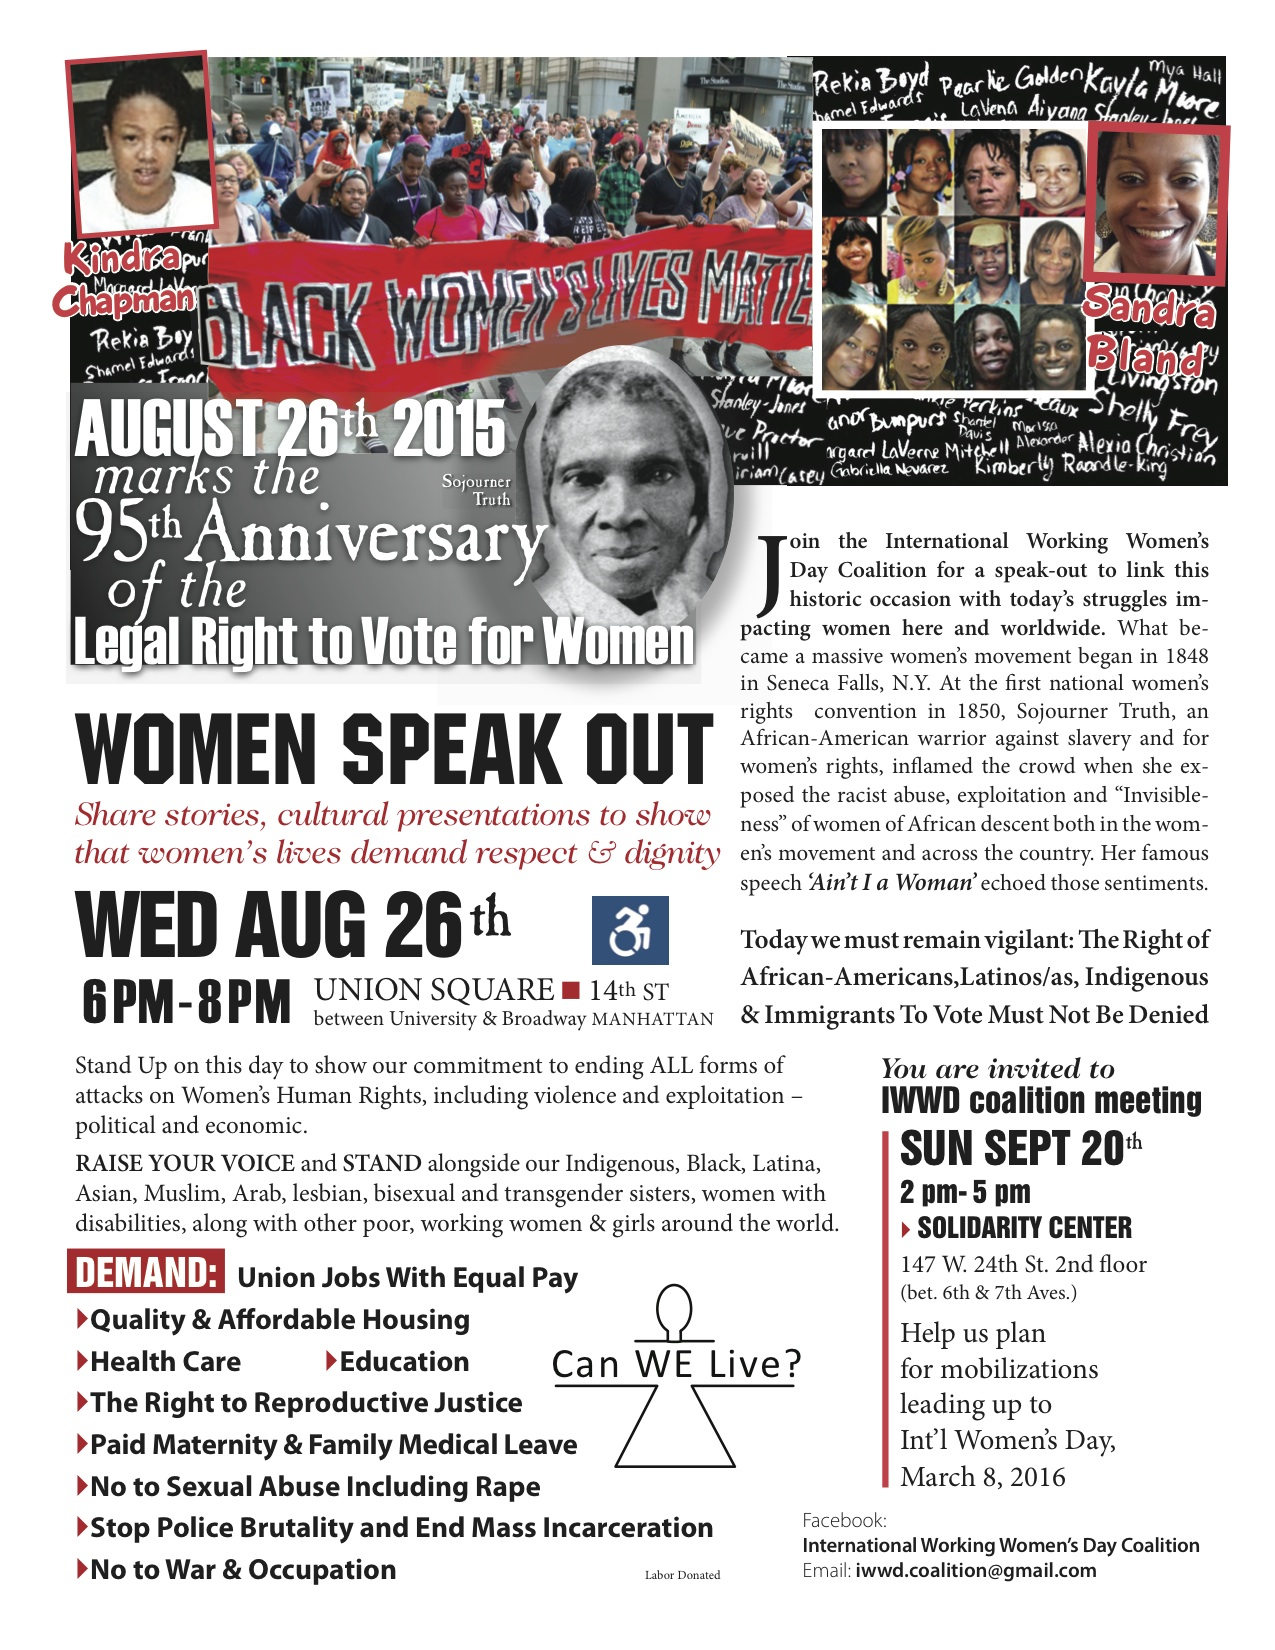 Women will continue to stand up for our rights after march new york daily news - Aug 26 Iwwc_color Leaflet